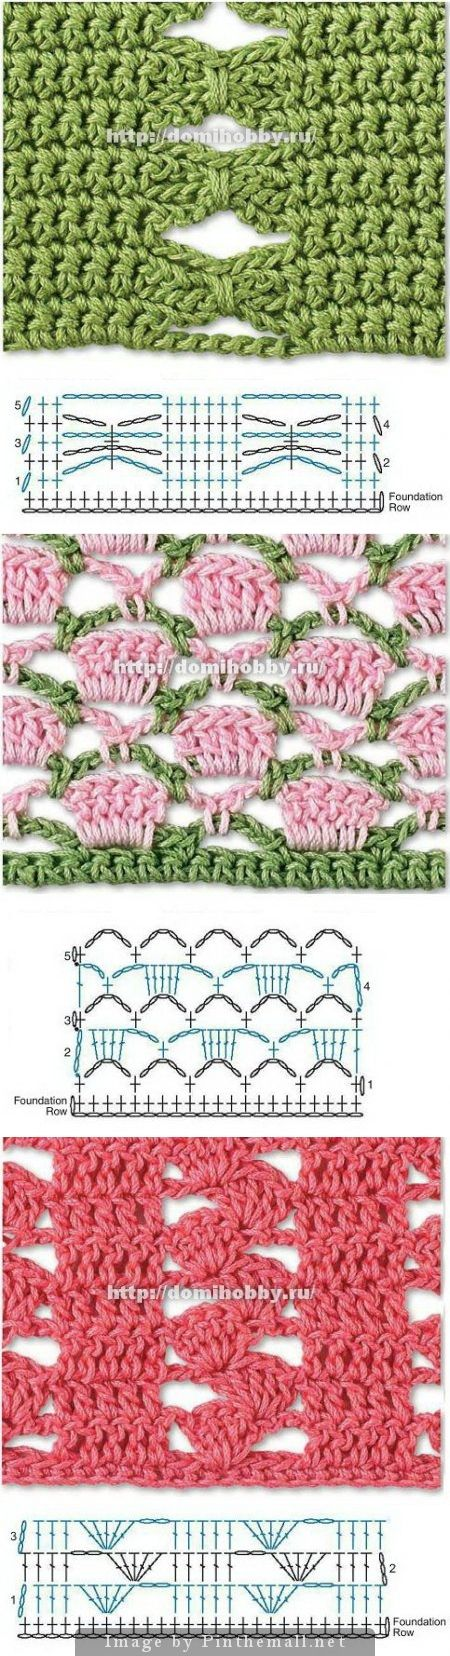 Crochet stitch patterns...